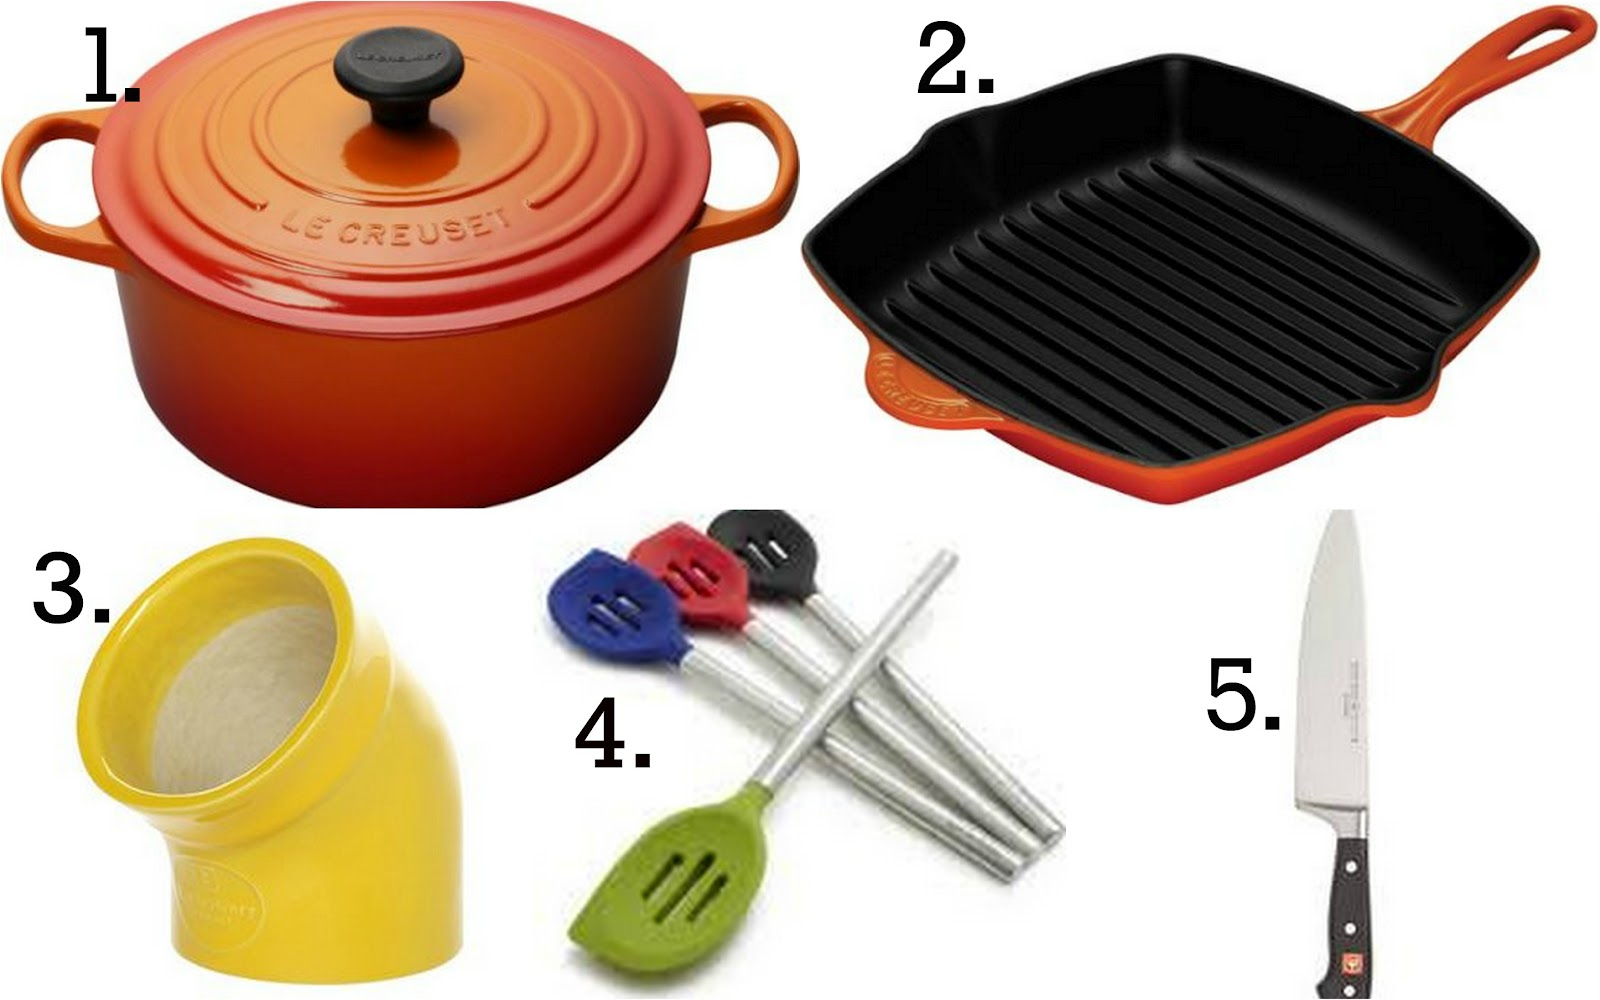 small accessories and kitchen our le top creuset utensils items is beautiful blog